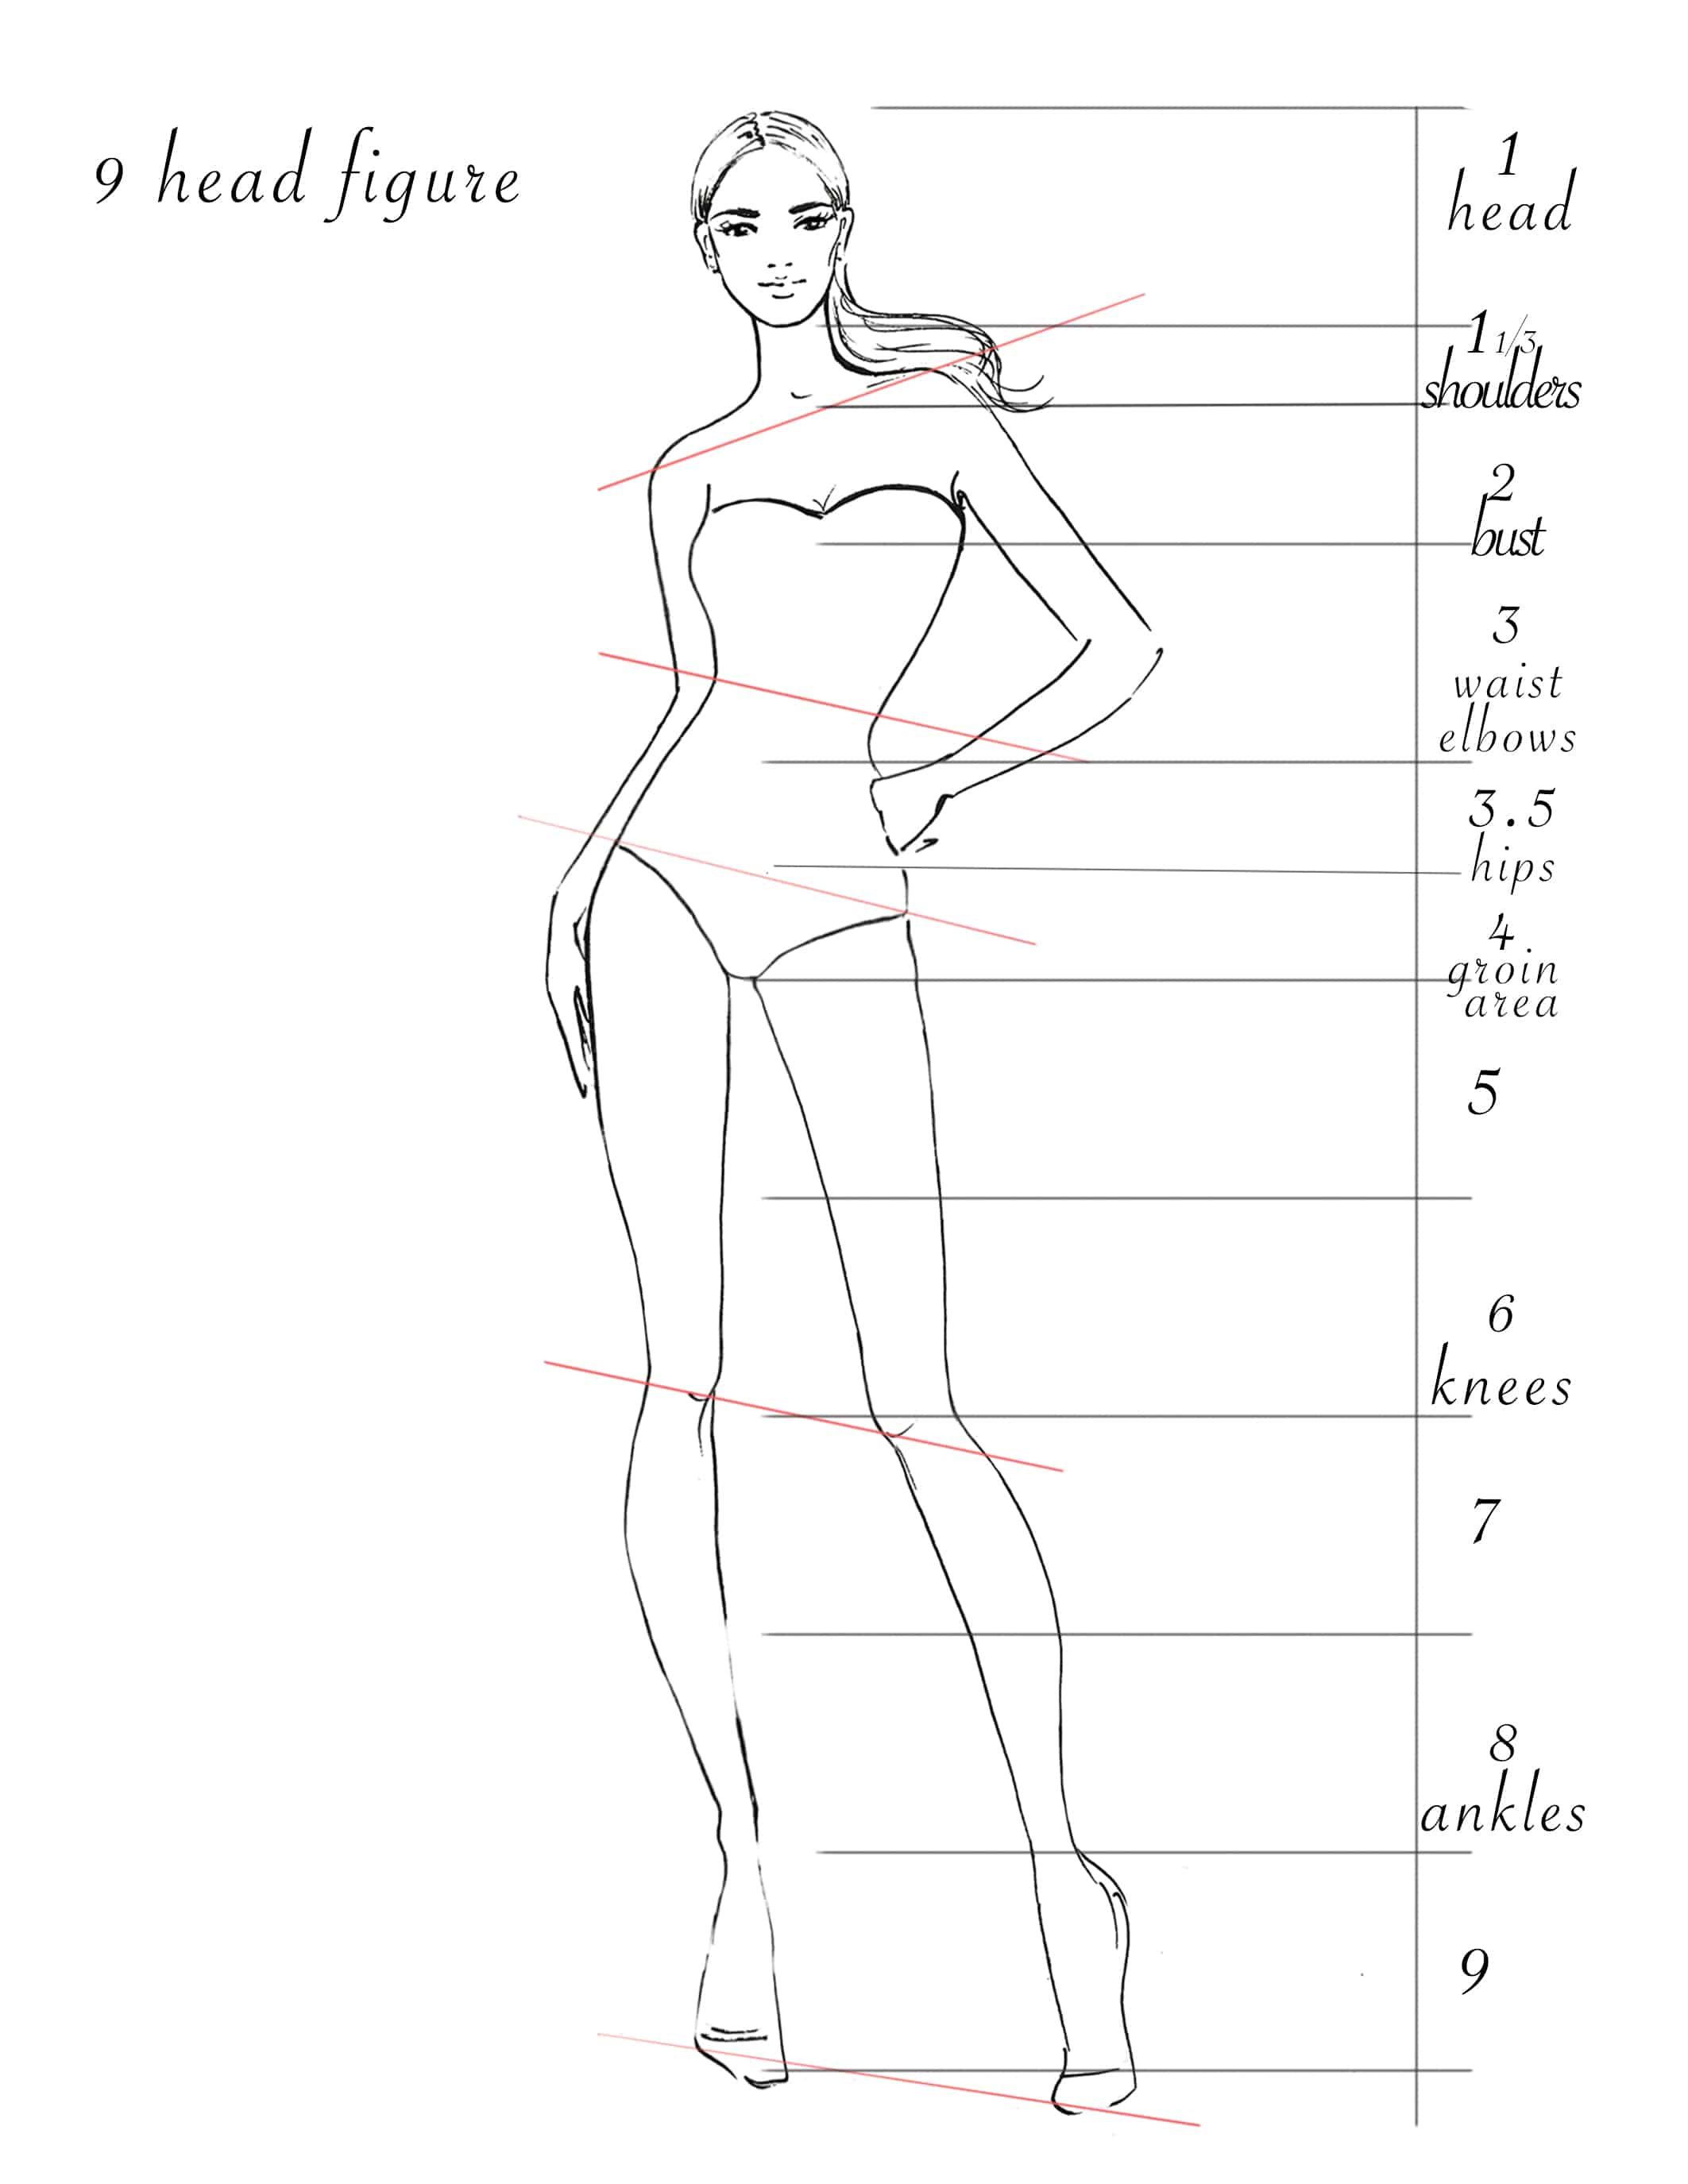 How To Draw Fashion Illustration Fashion Figure 101 Elena Fay Fashion Model Sketch Fashion Illustration Tutorial Illustration Fashion Design